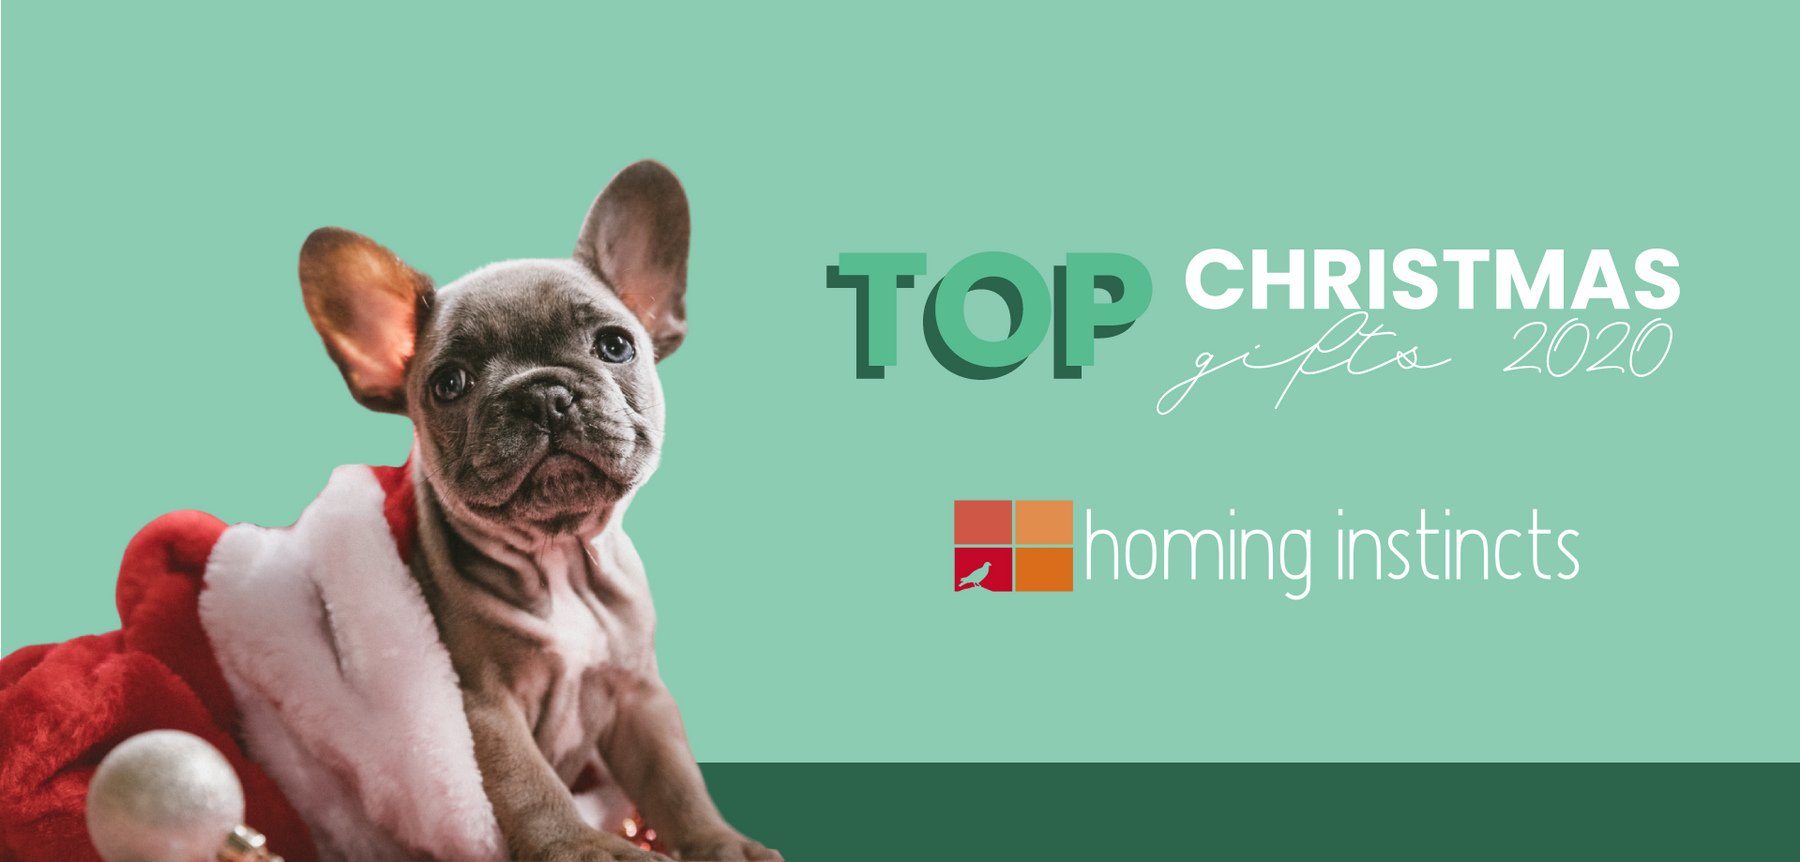 Santa Claus Is Coming! | The Top Christmas Gift Ideas for 2020-Homing Instincts